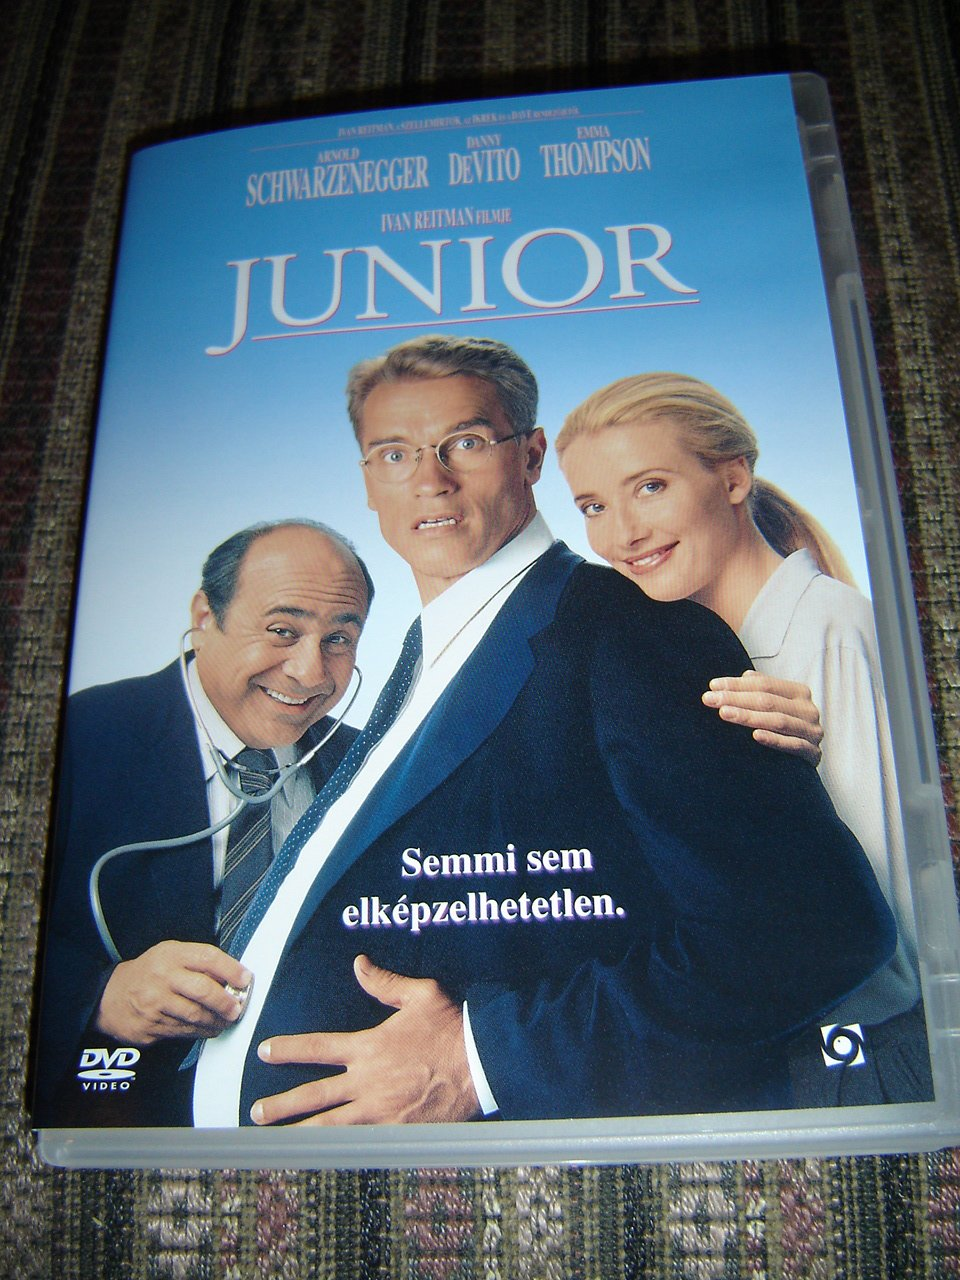 Amazon.com: Junior (DVD) Nothing is inconceivable - Semmi ...